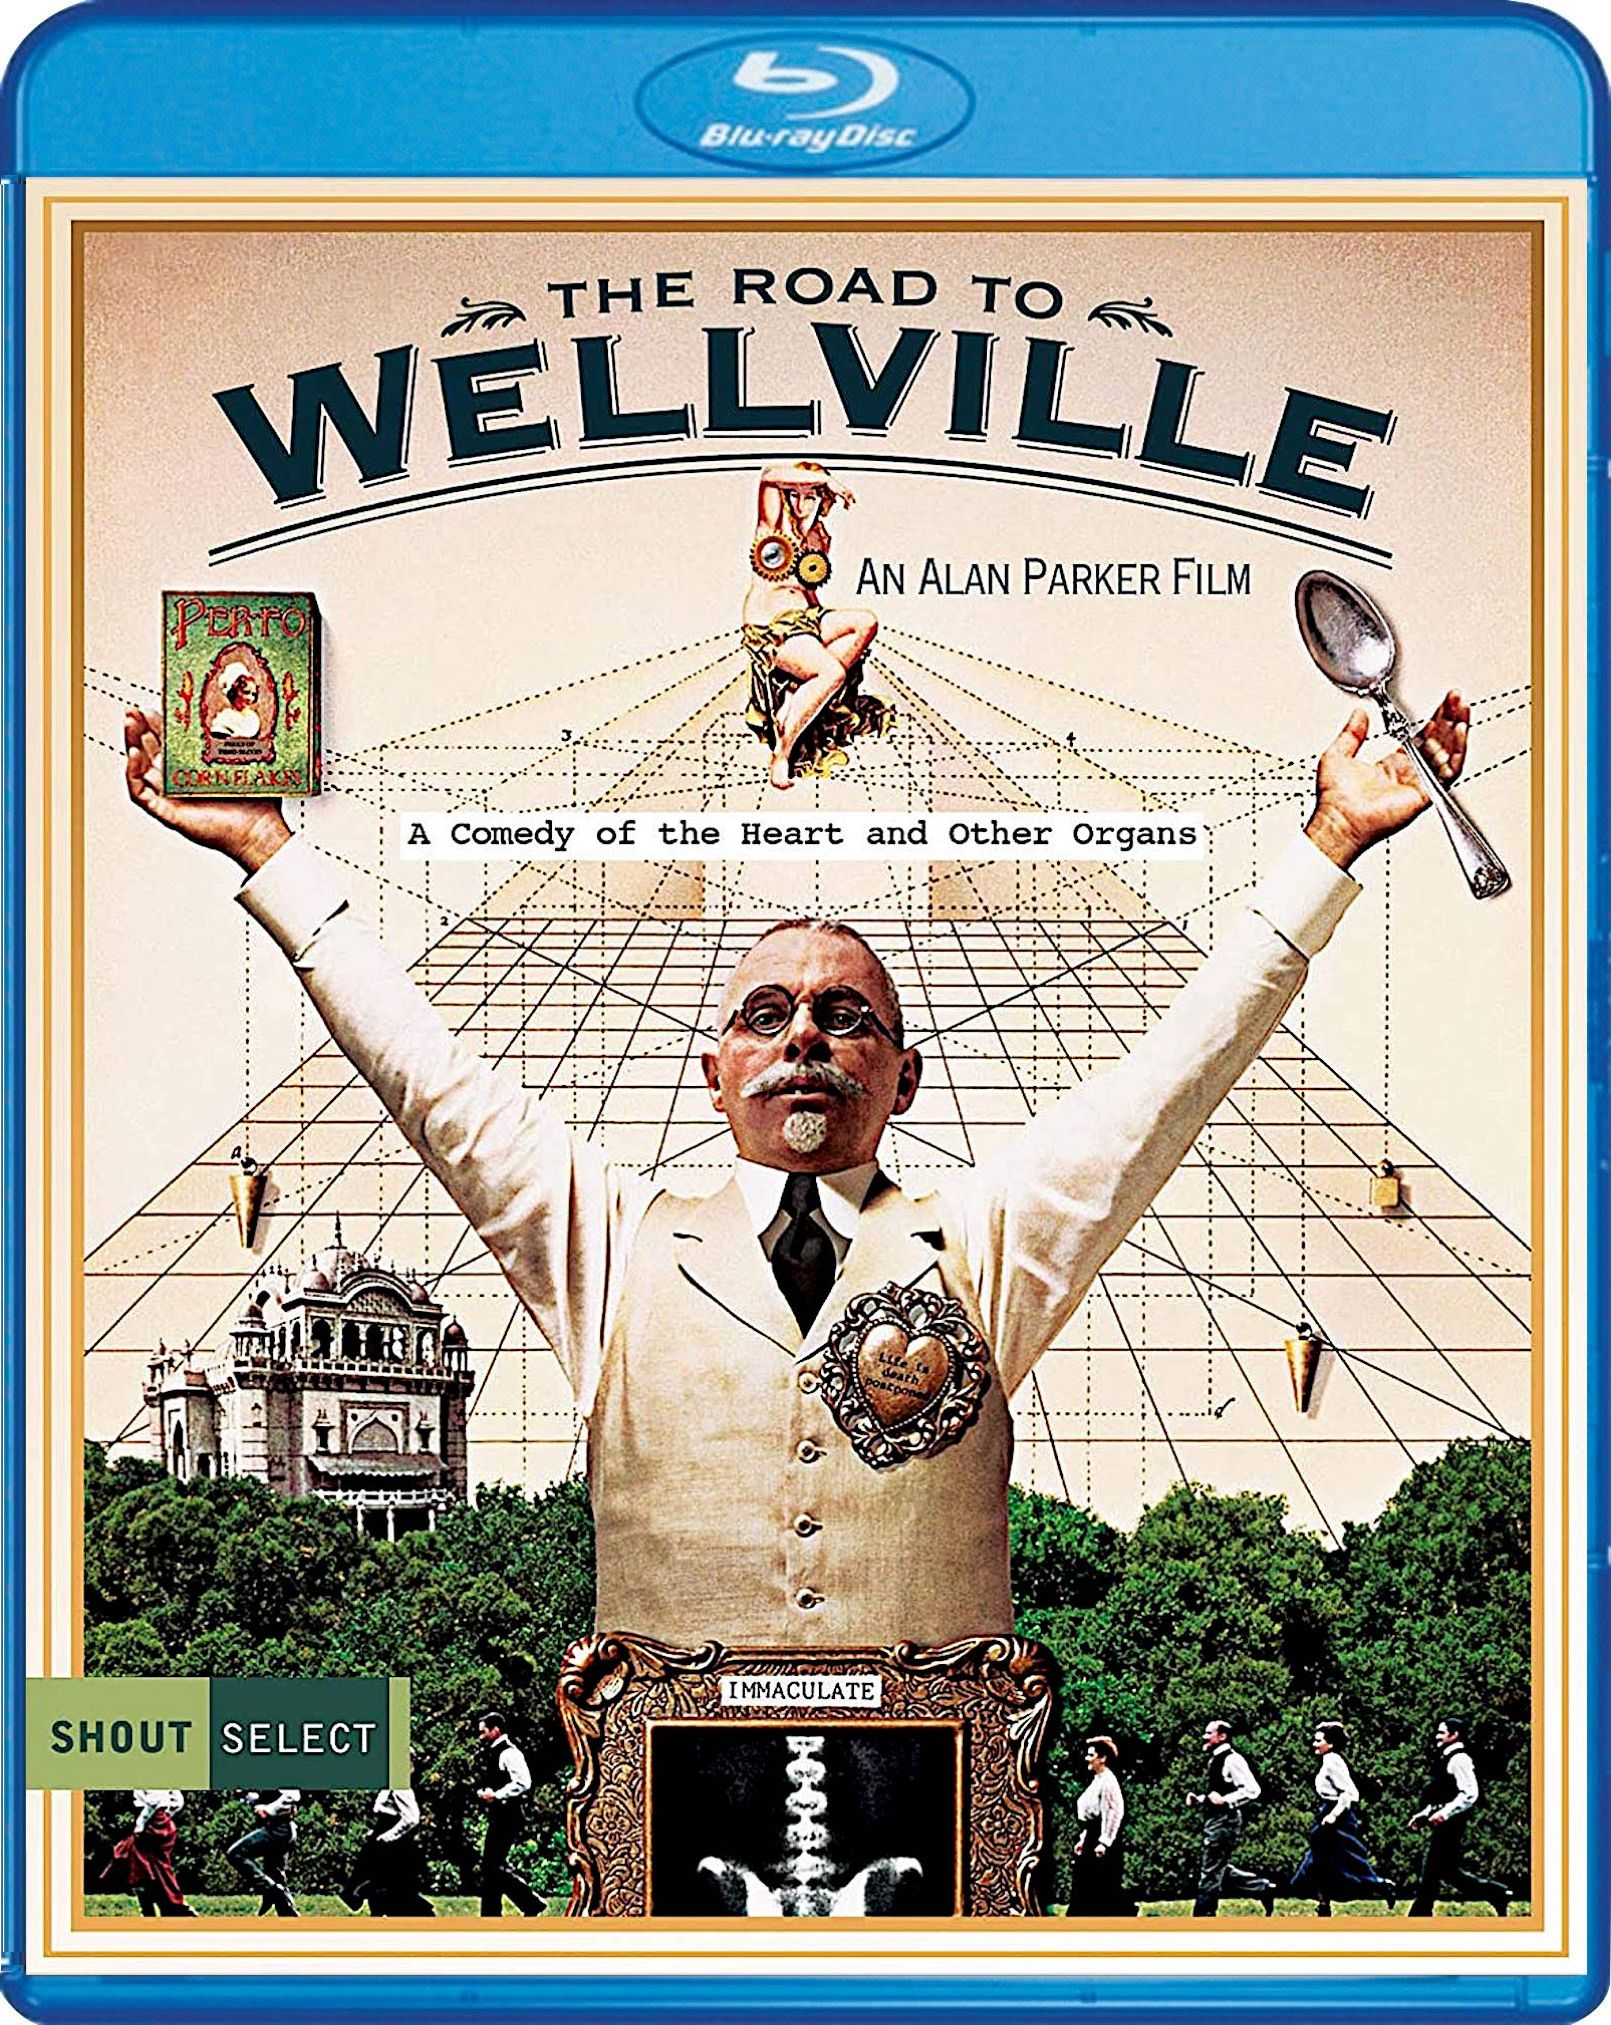 THE ROAD TO WELLVILLE BLURAY SPINE 110 (SHOUT SELECT) in